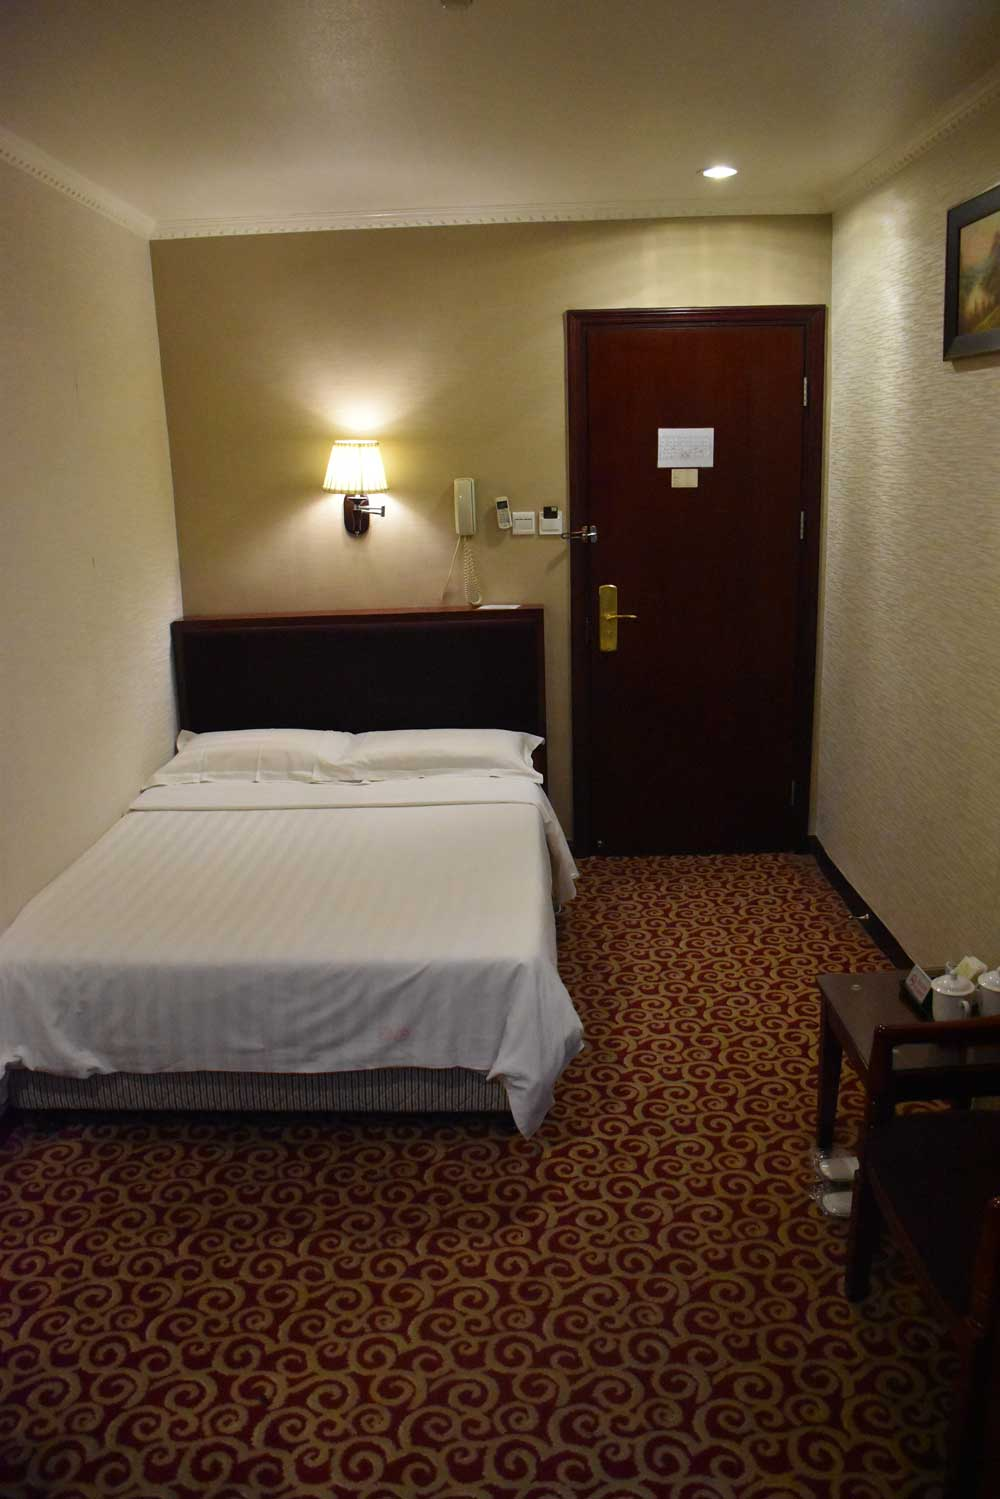 East Asia Hotel room